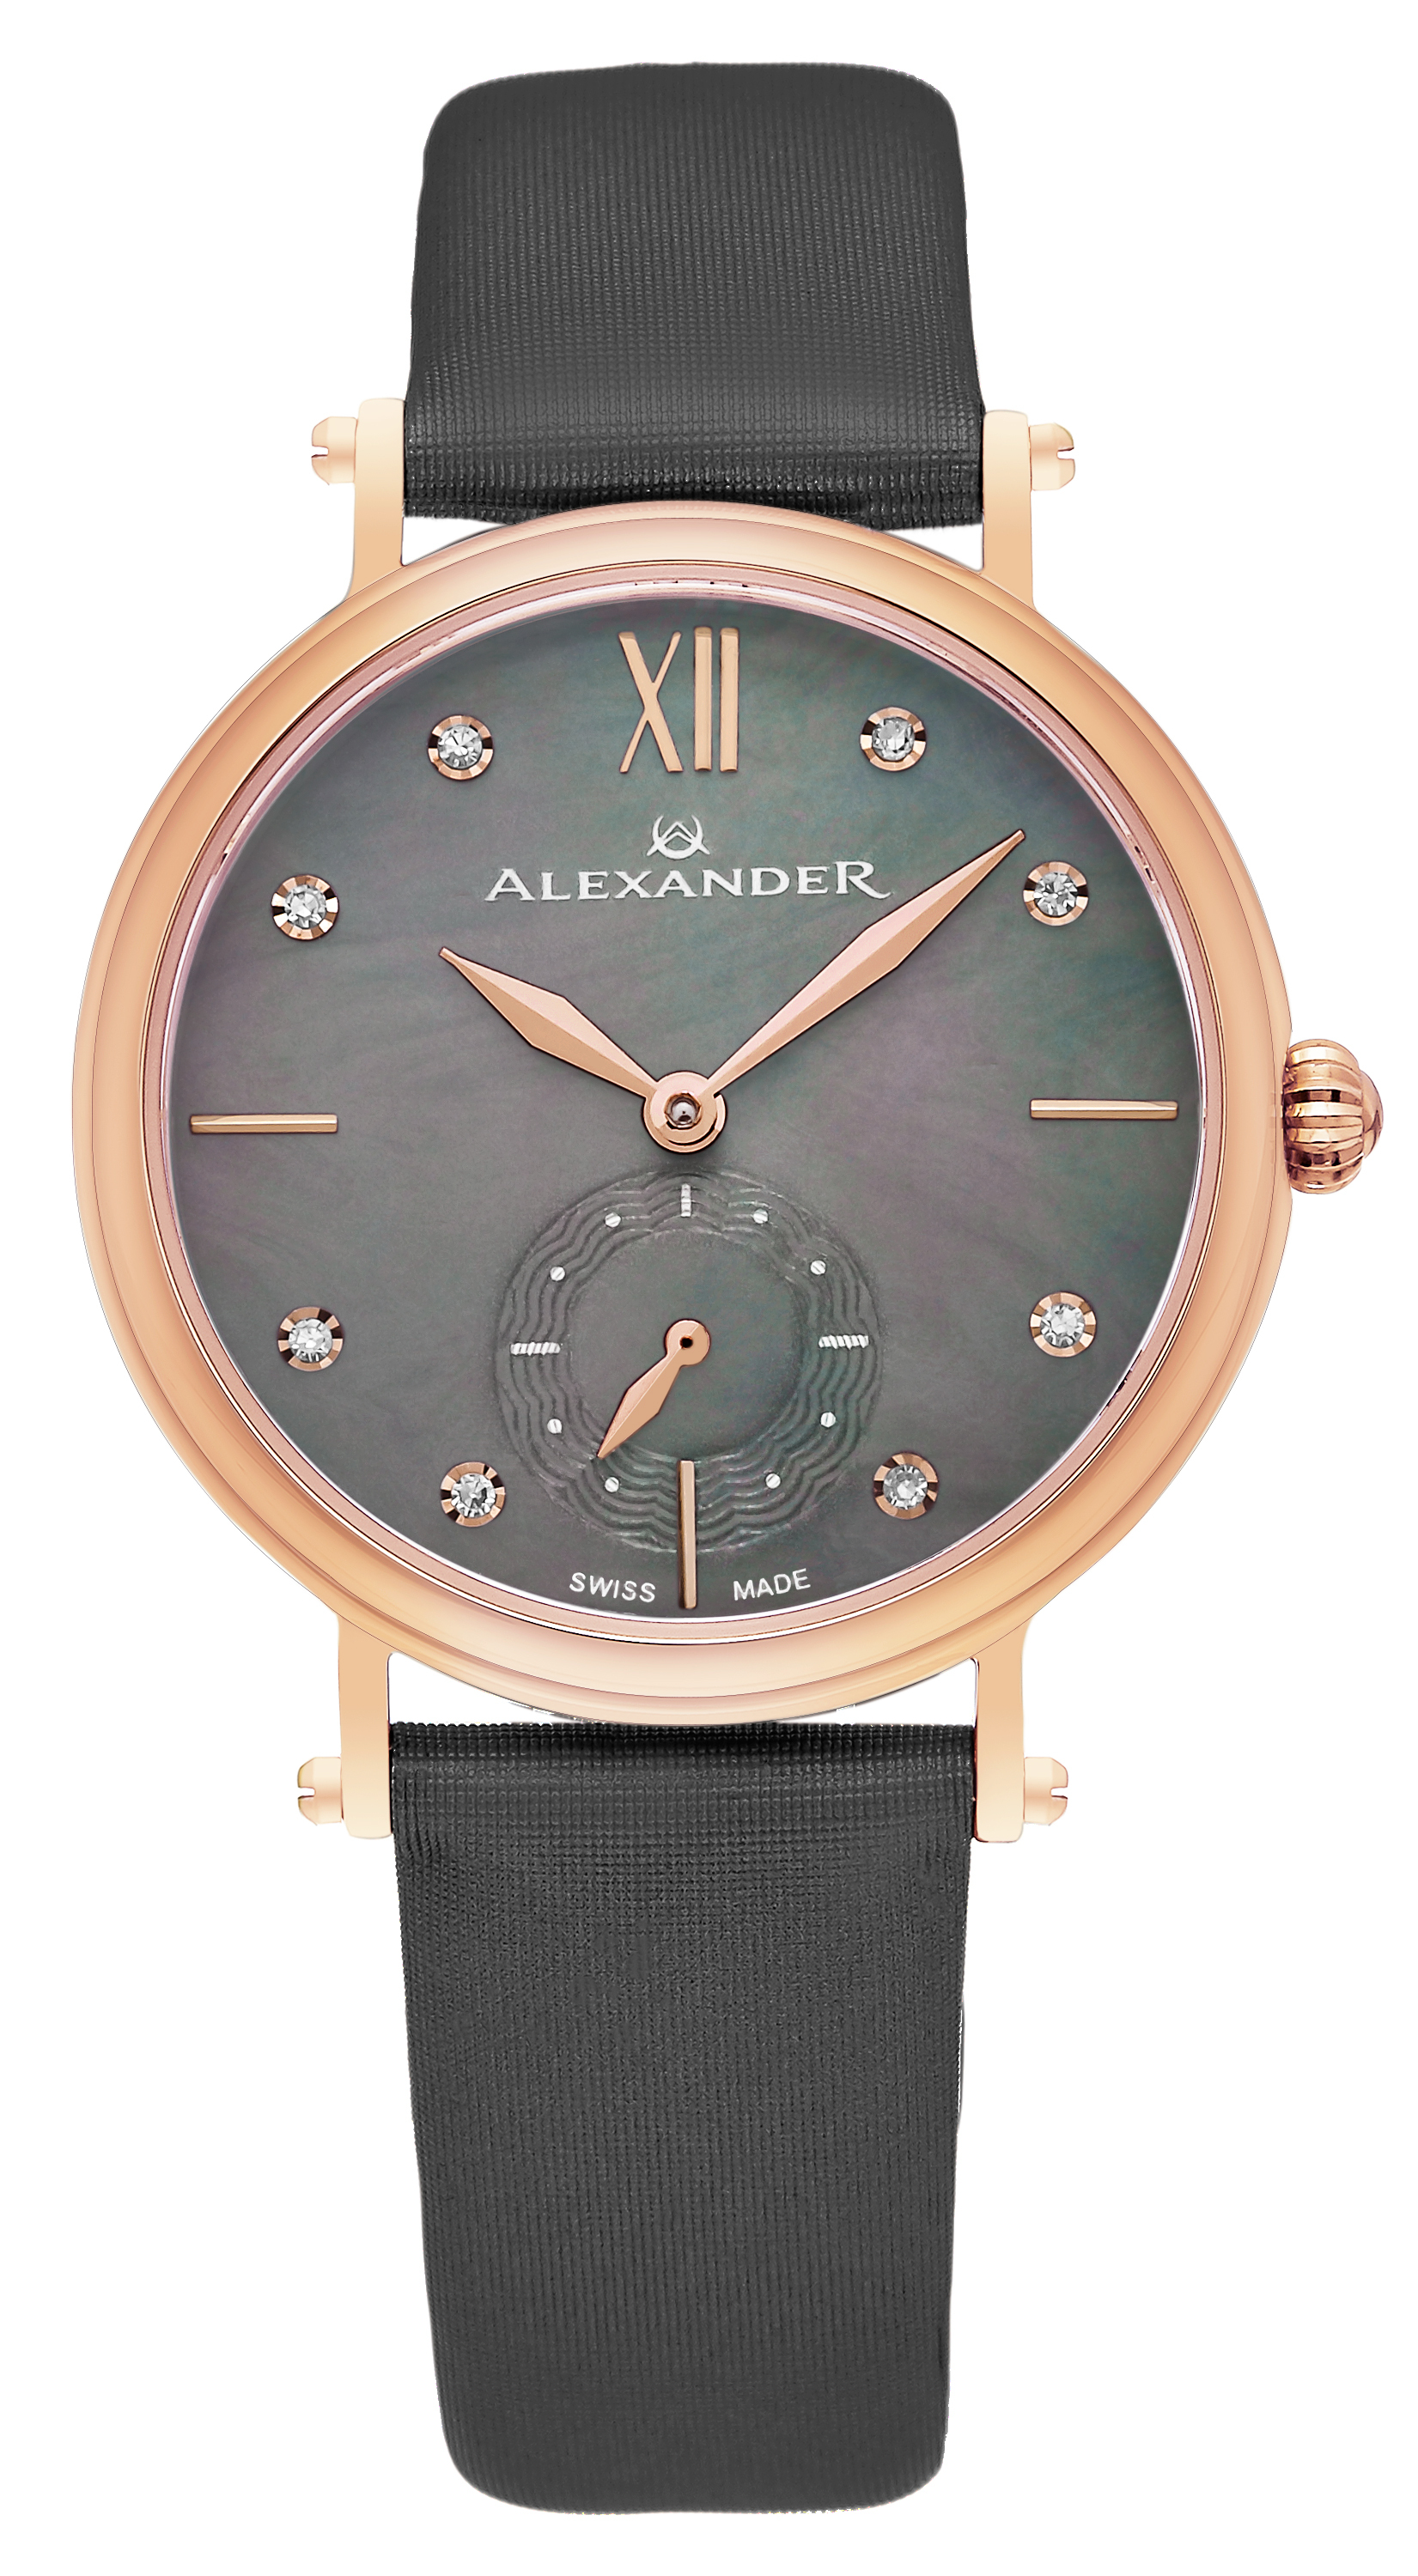 Alexander Monarch Dameklokke AD201-04 Sort/Sateng Ø34 mm - Alexander